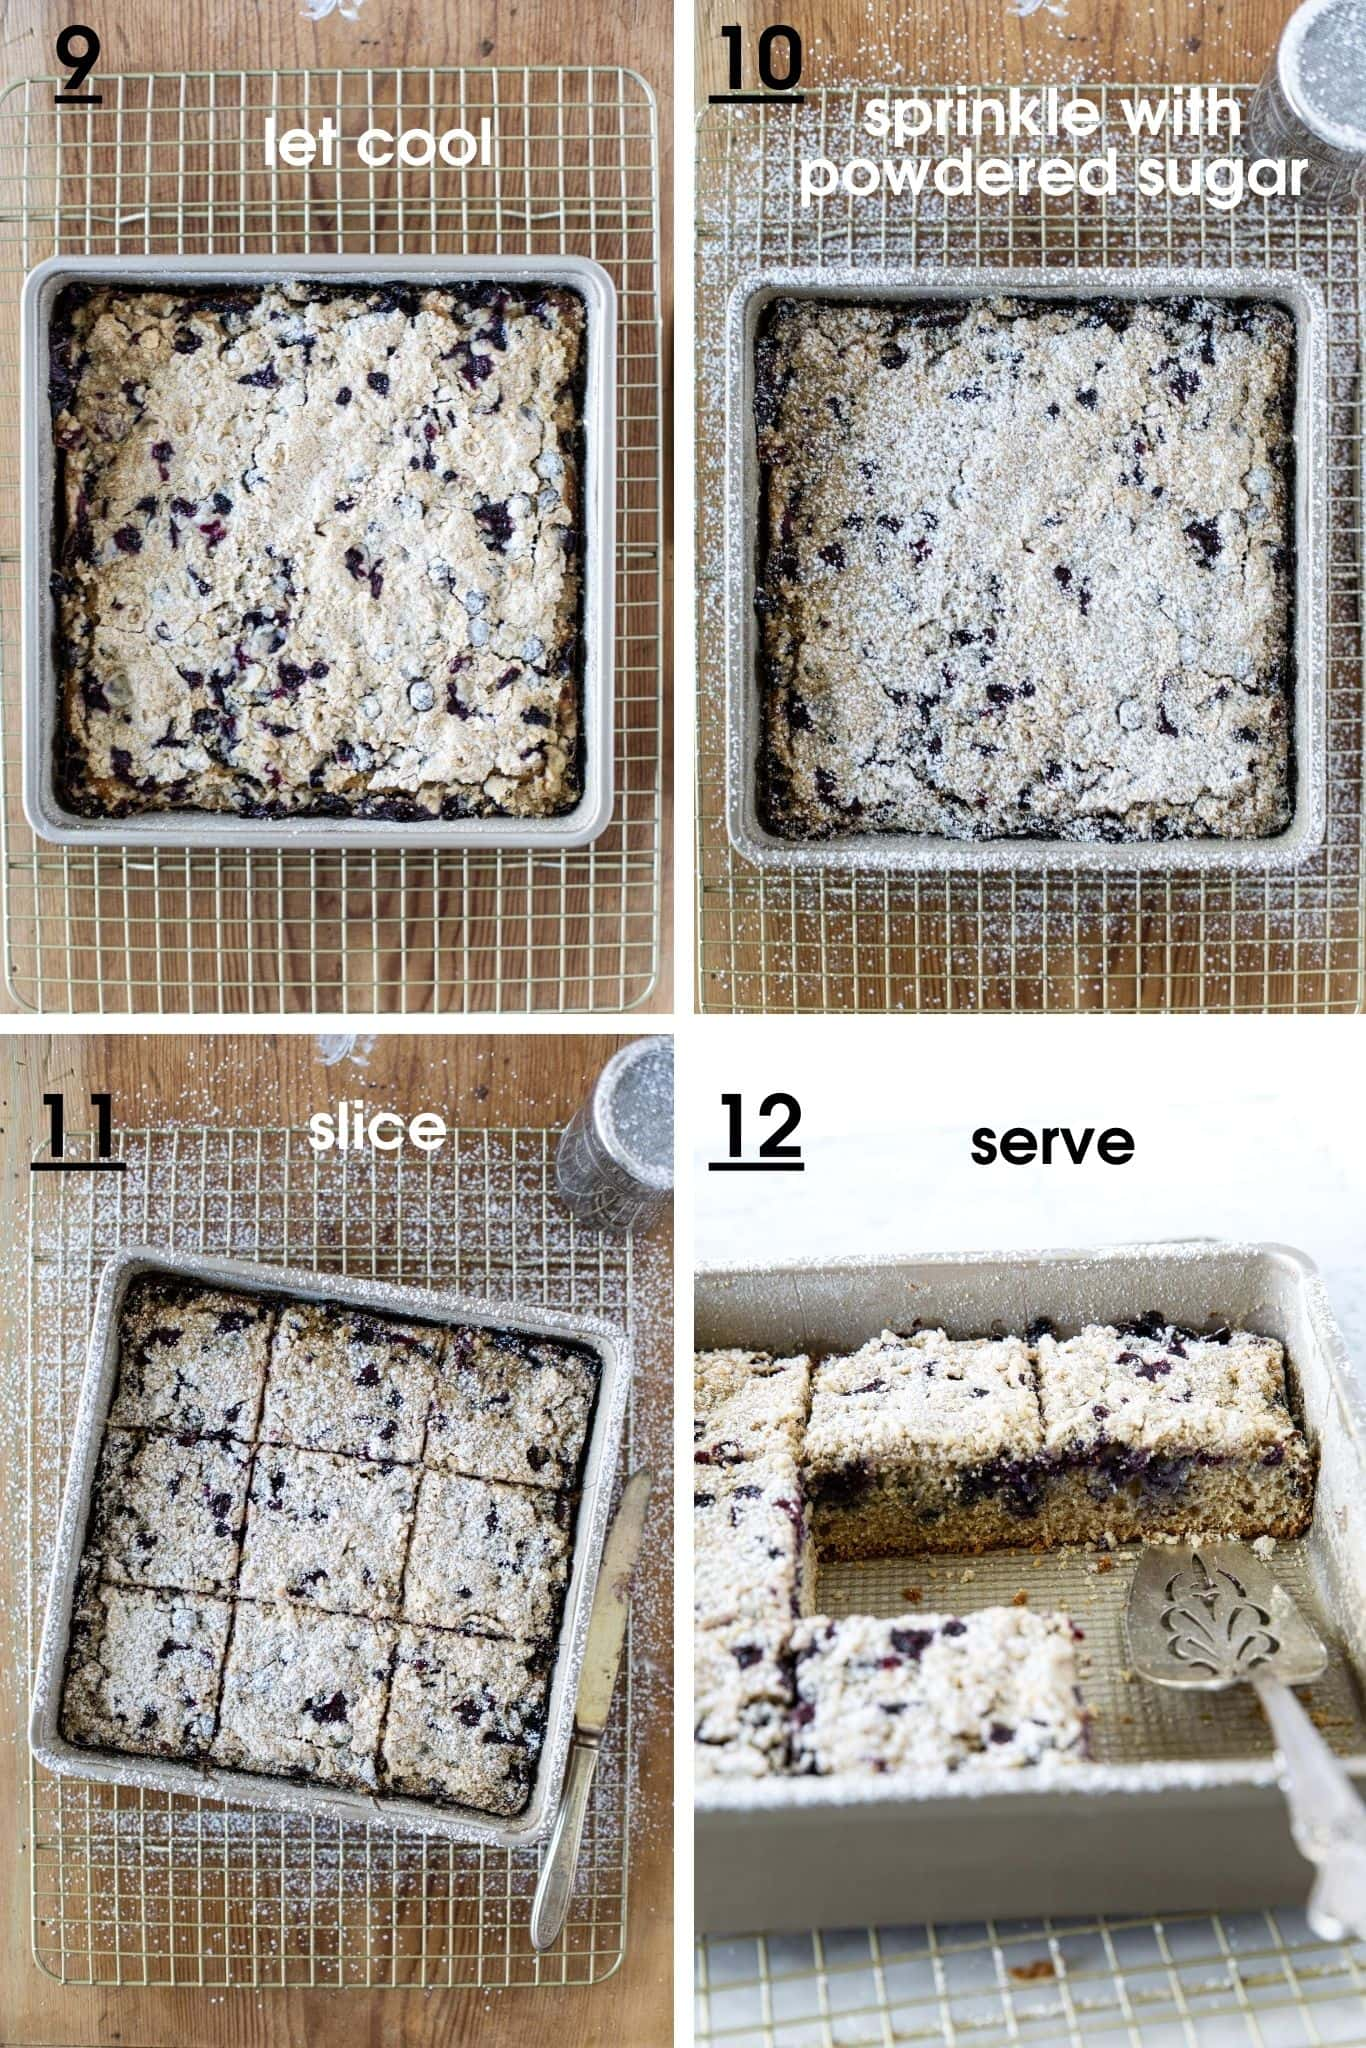 Photos showing how to serve Blueberry Crumb Cake from verygoodcook.com